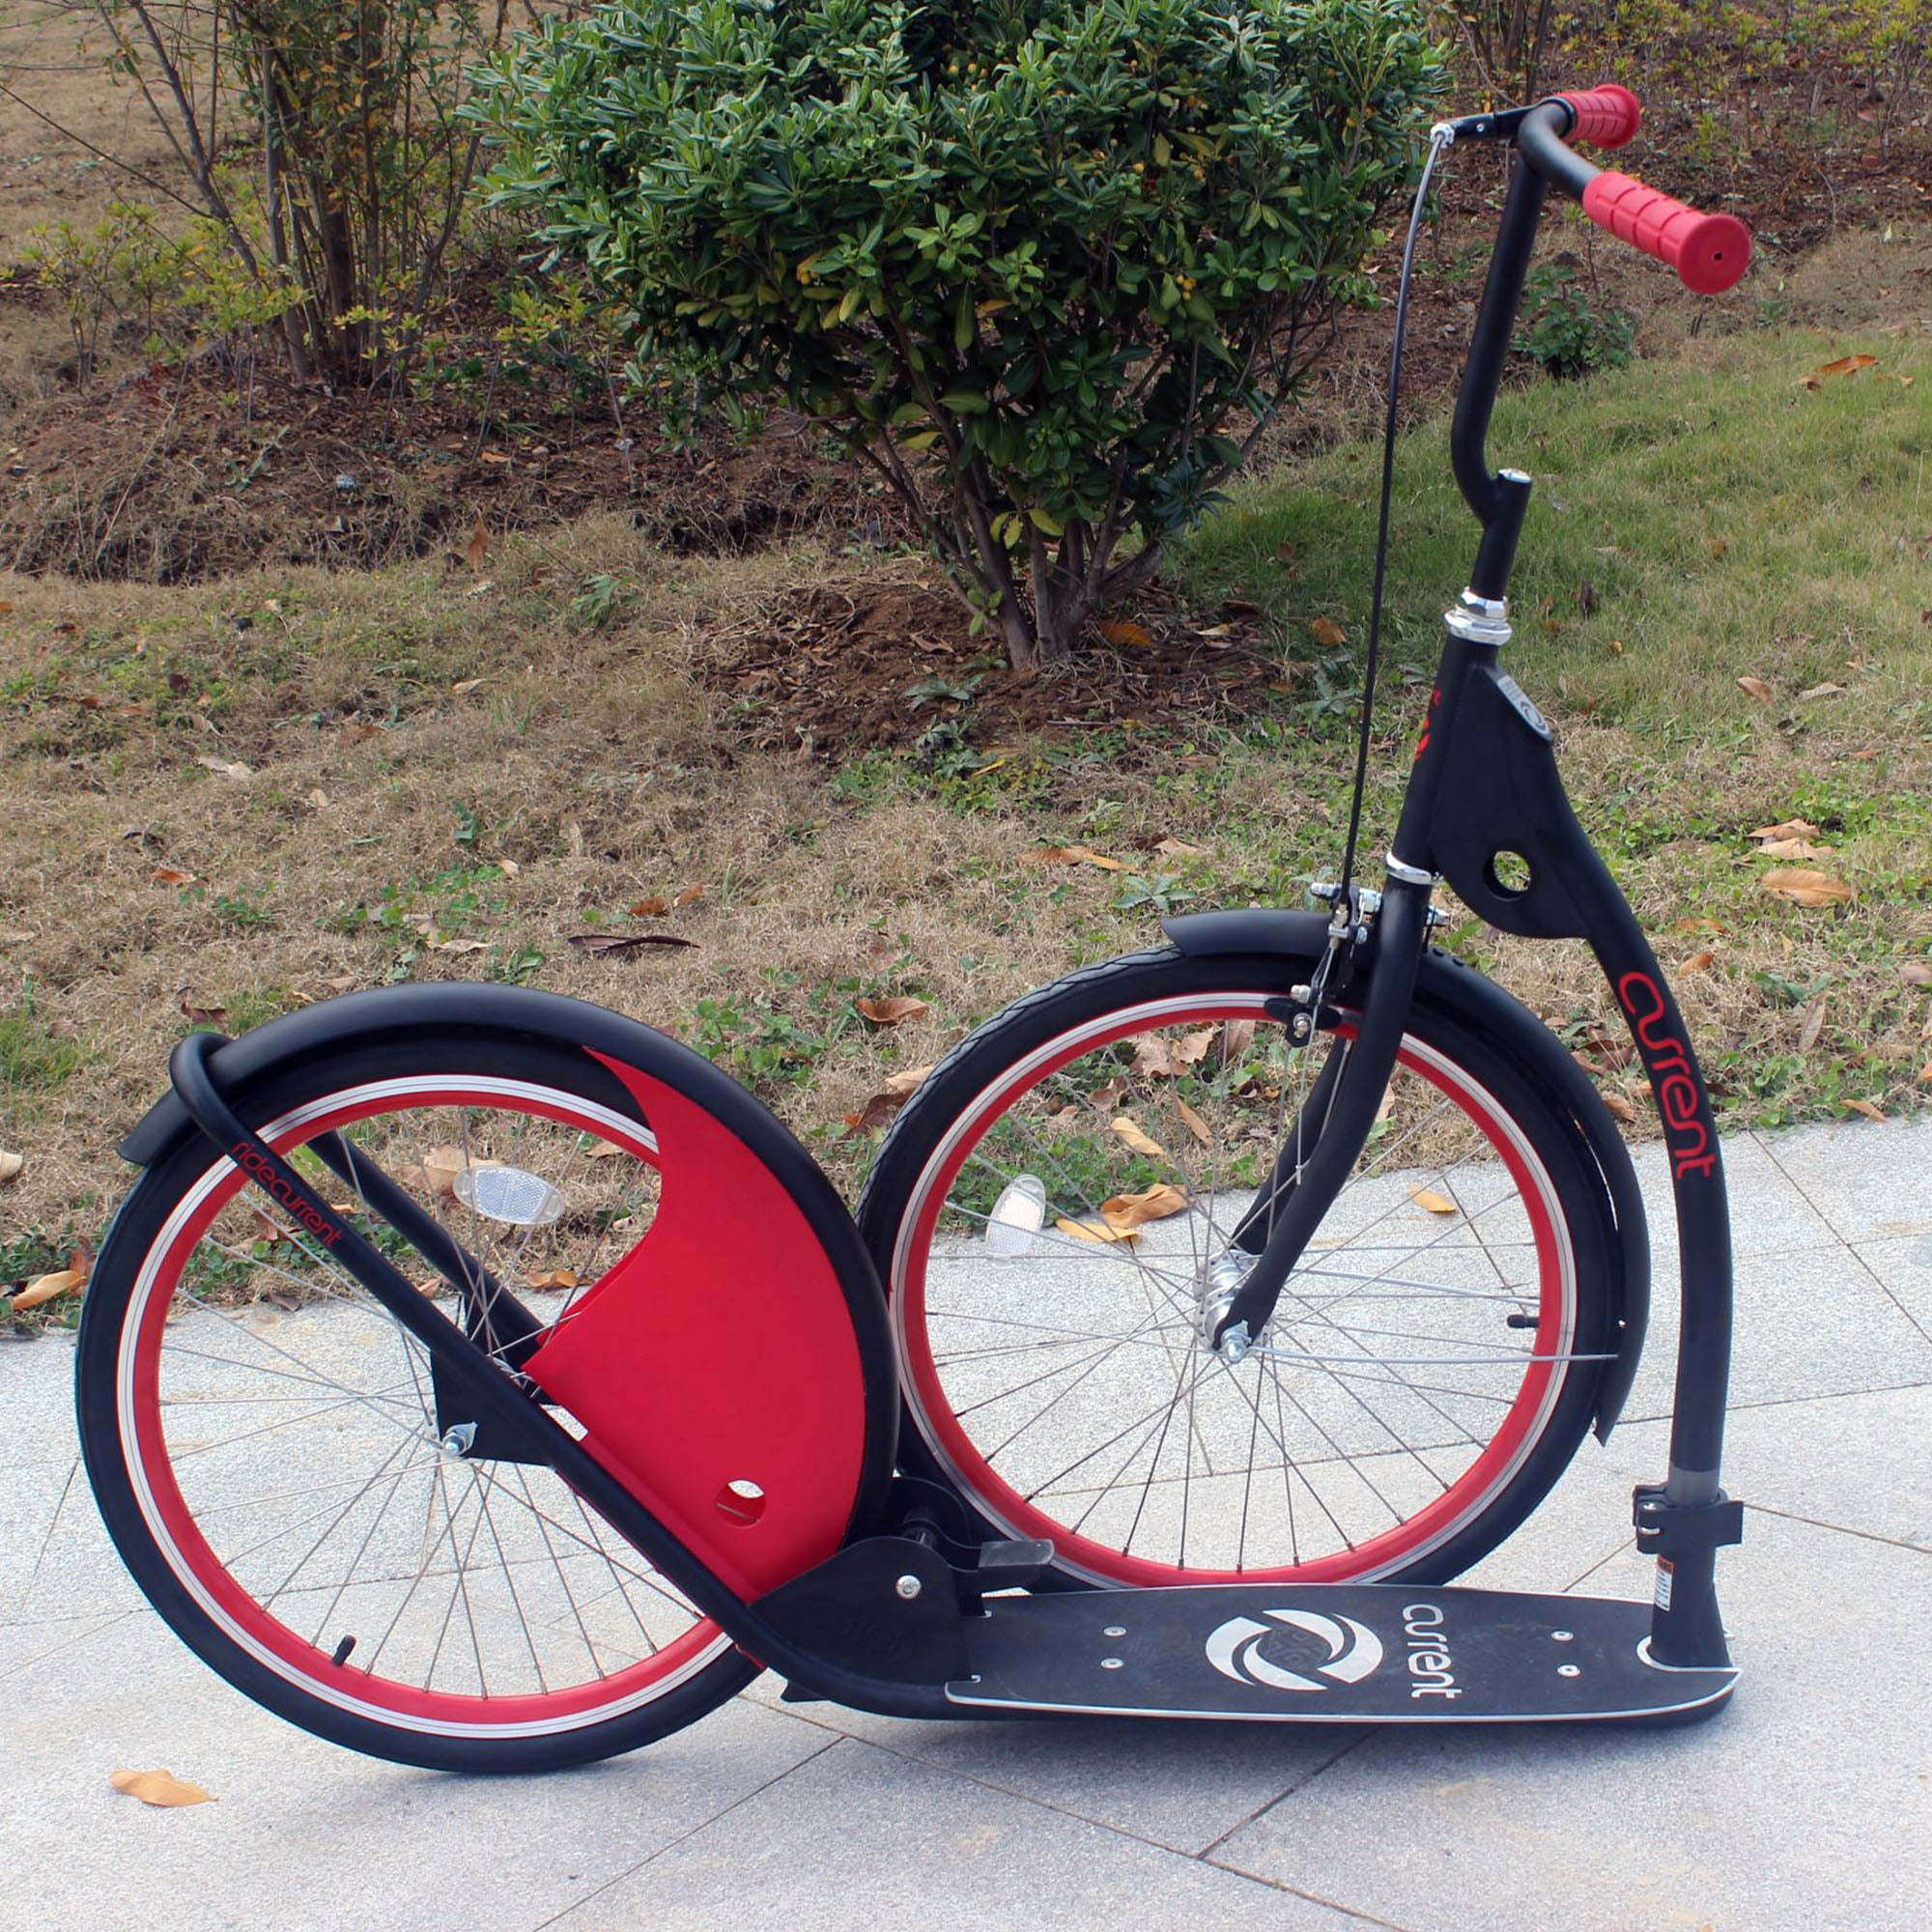 Current Coasters FOLDABLE Kickbike Scooter for Teens and Adults